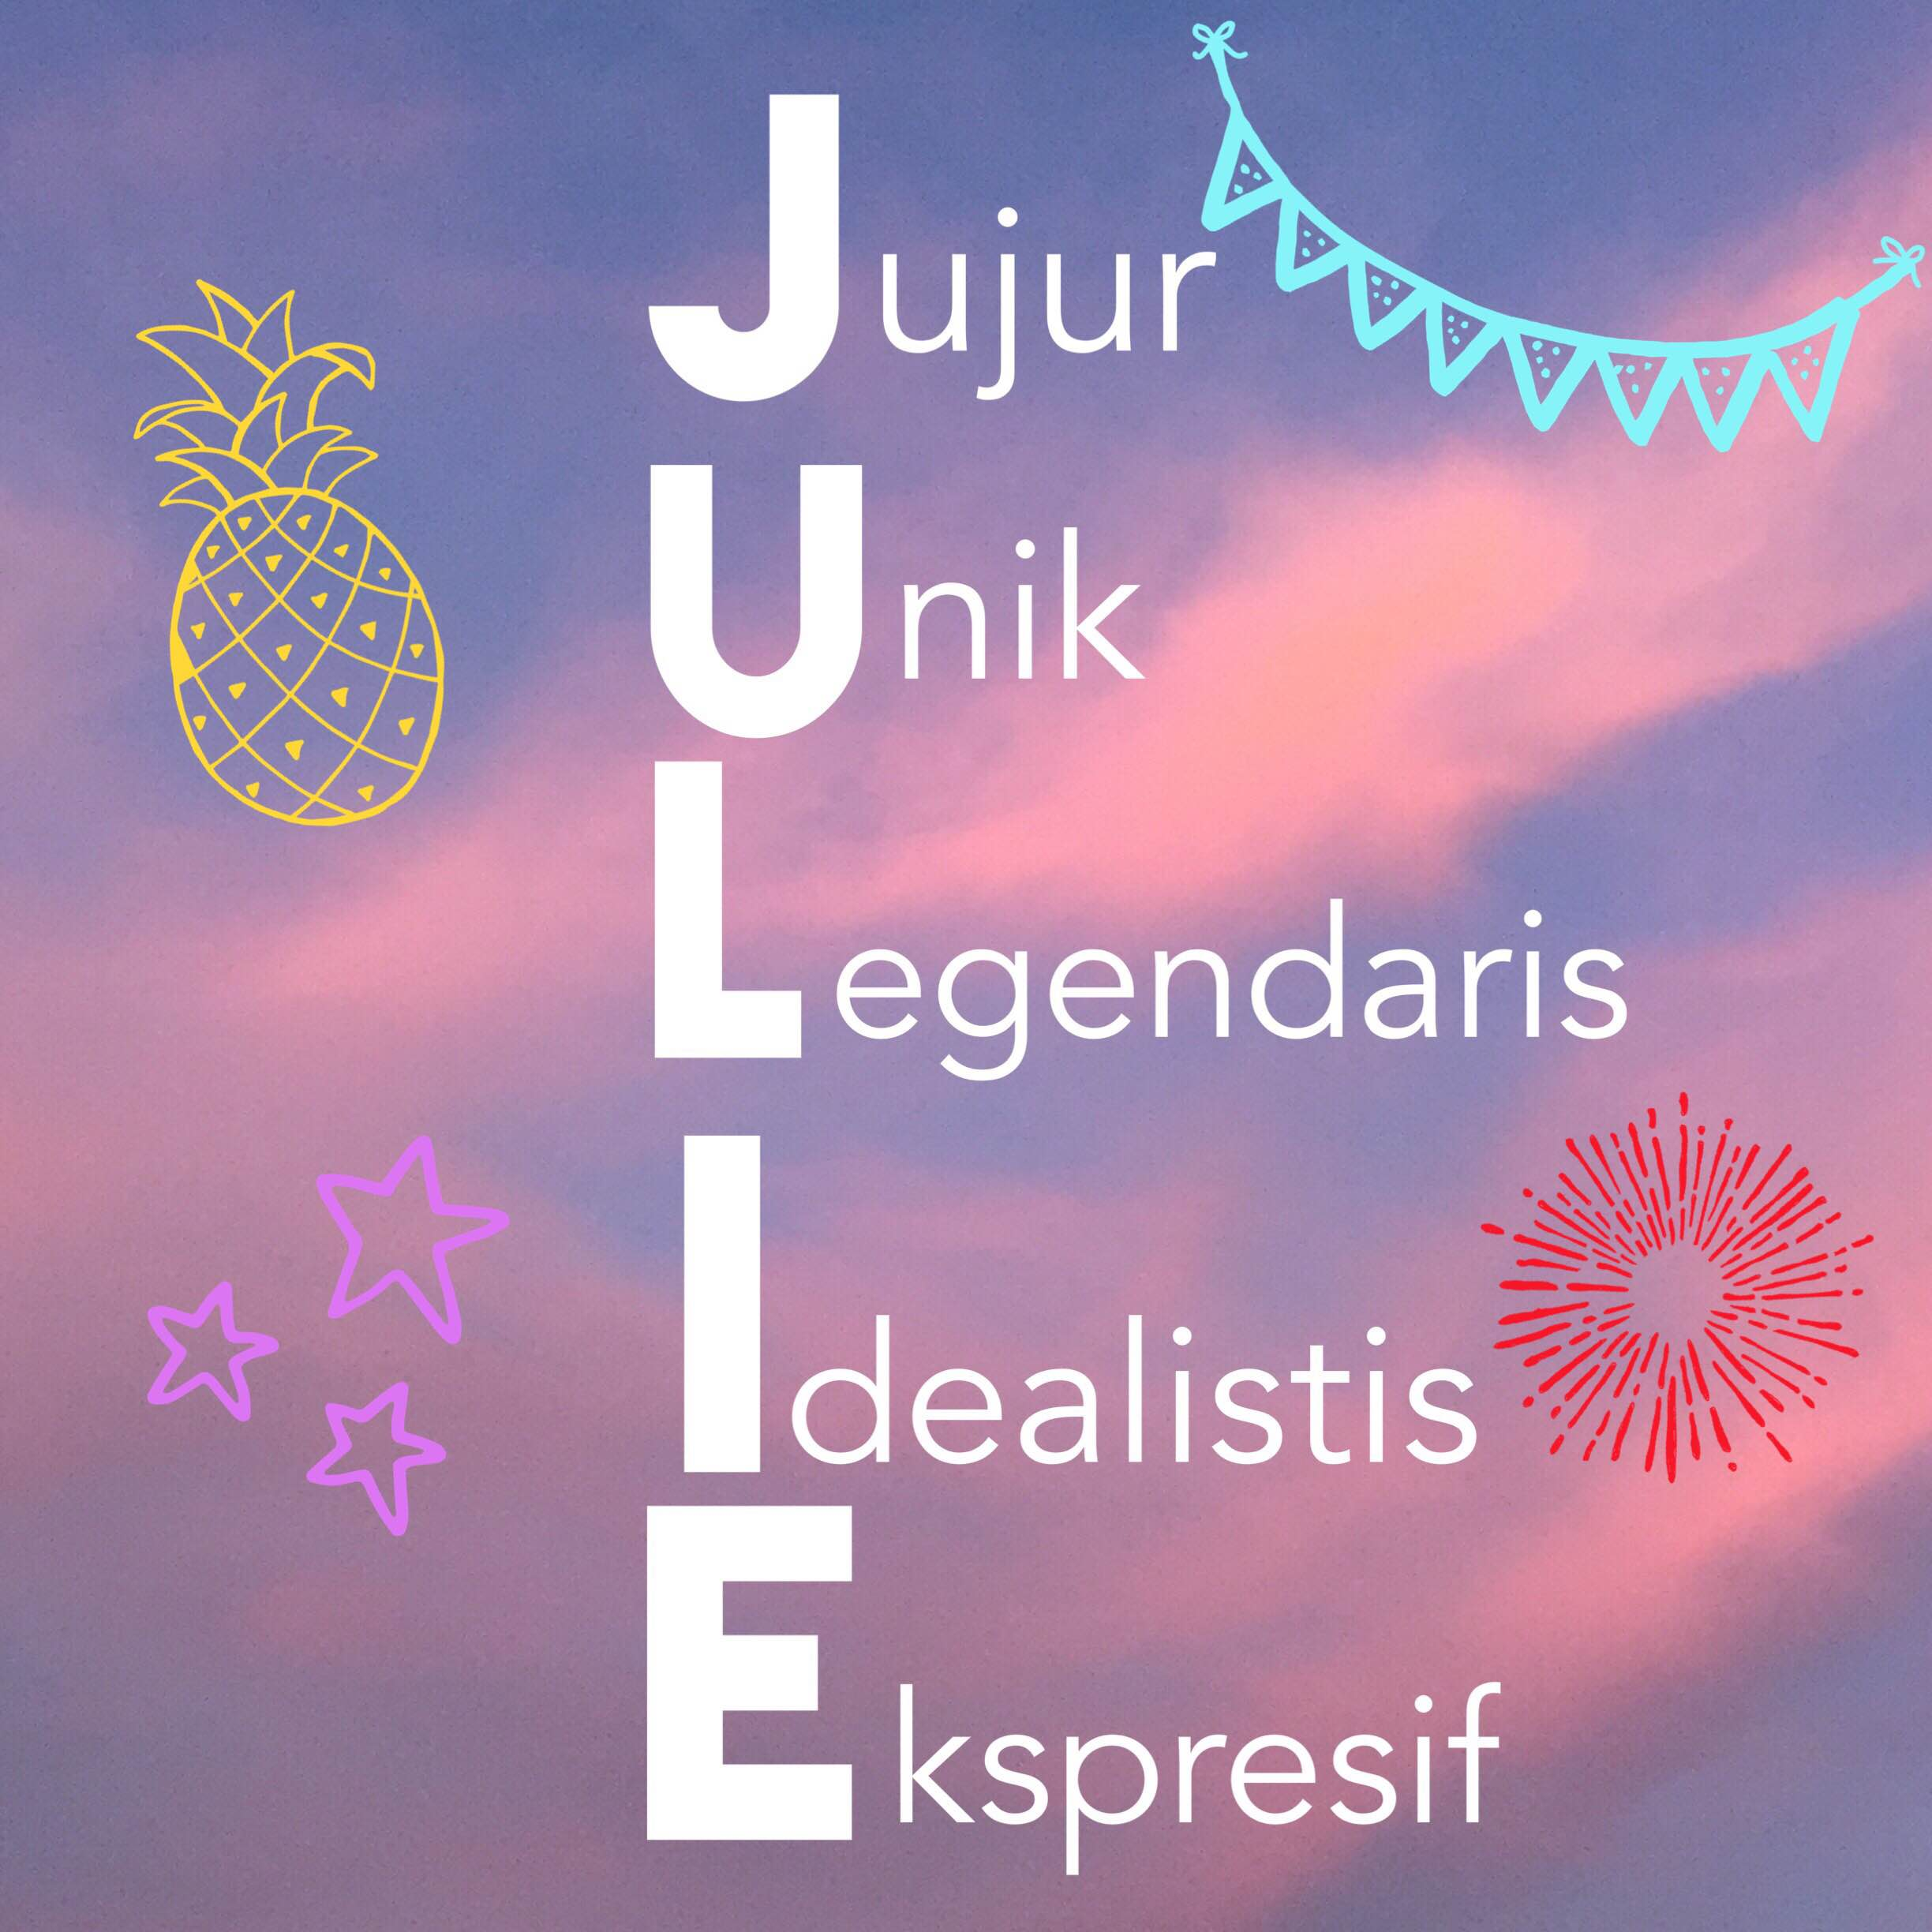 Acrostic poem sample JULIE